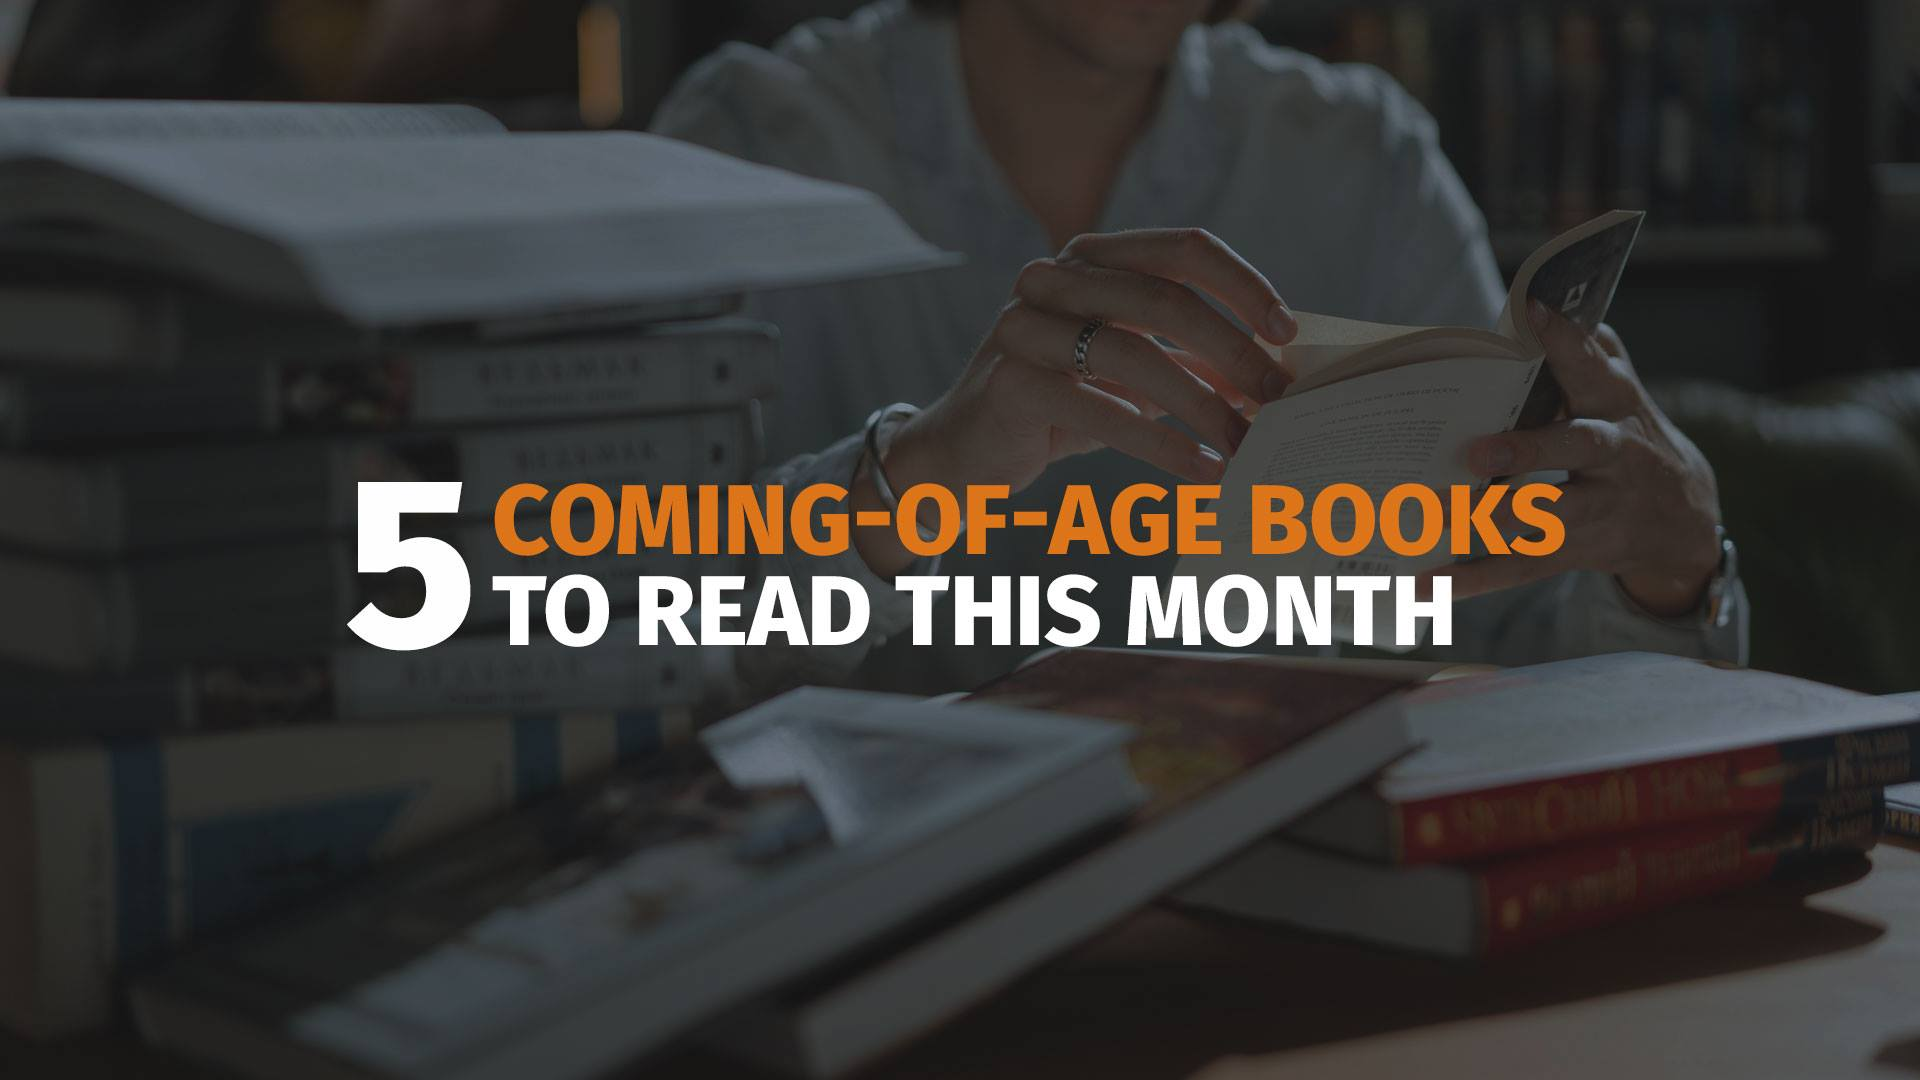 5 coming of age books to read thi month banner